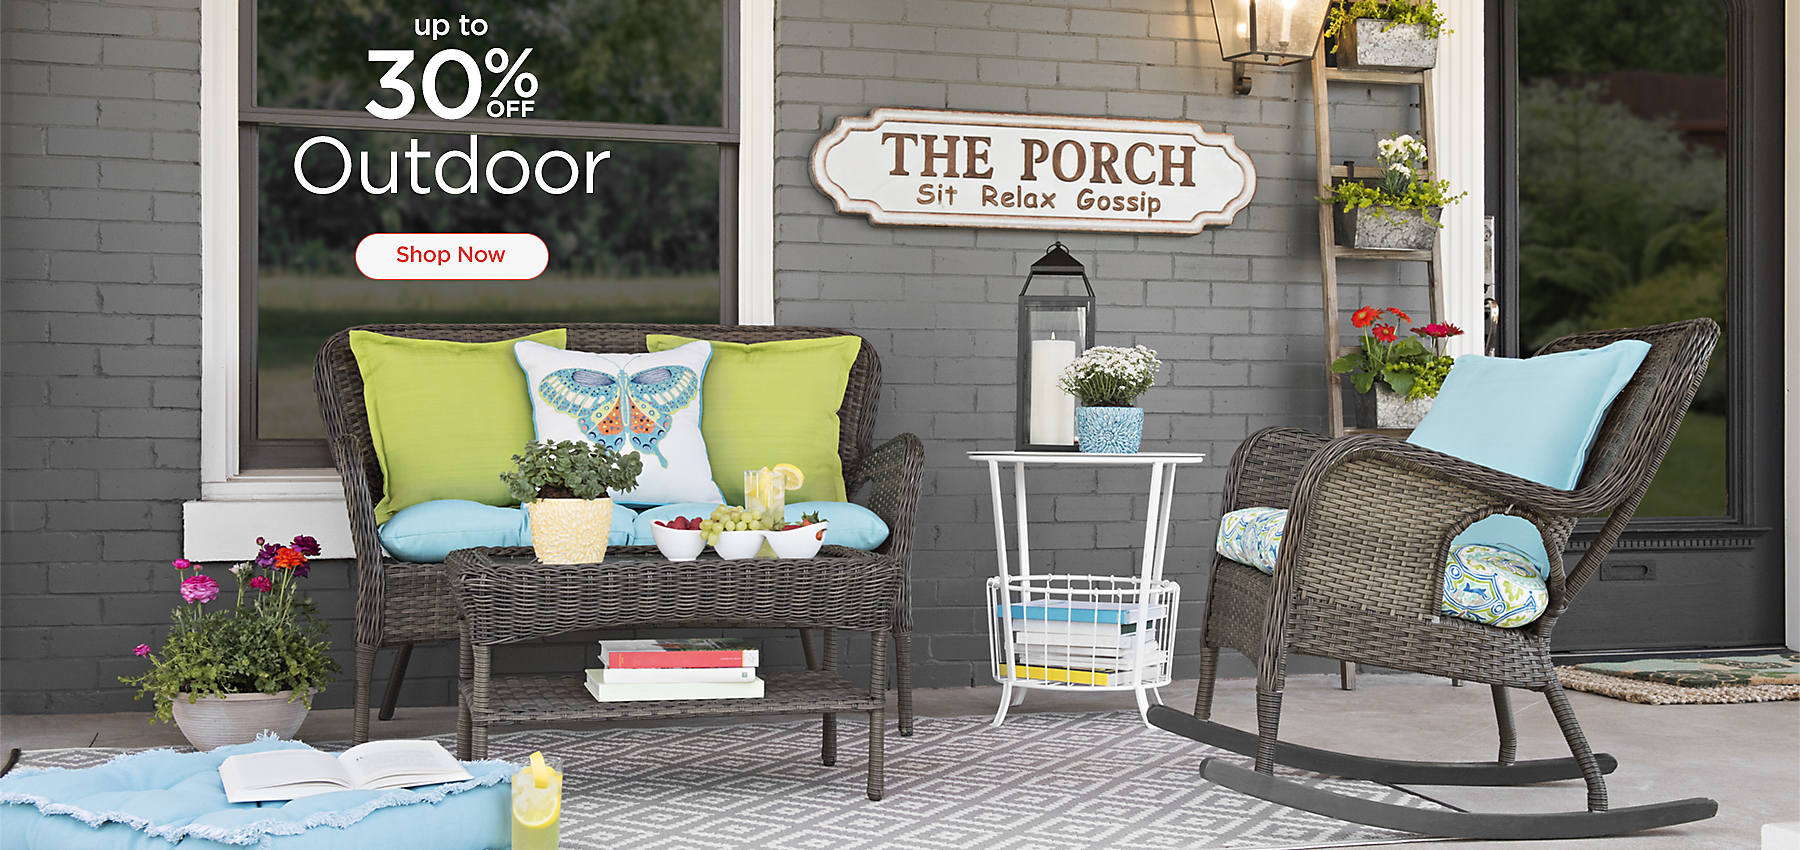 Up To 30% Off Outdoor   Shop Now